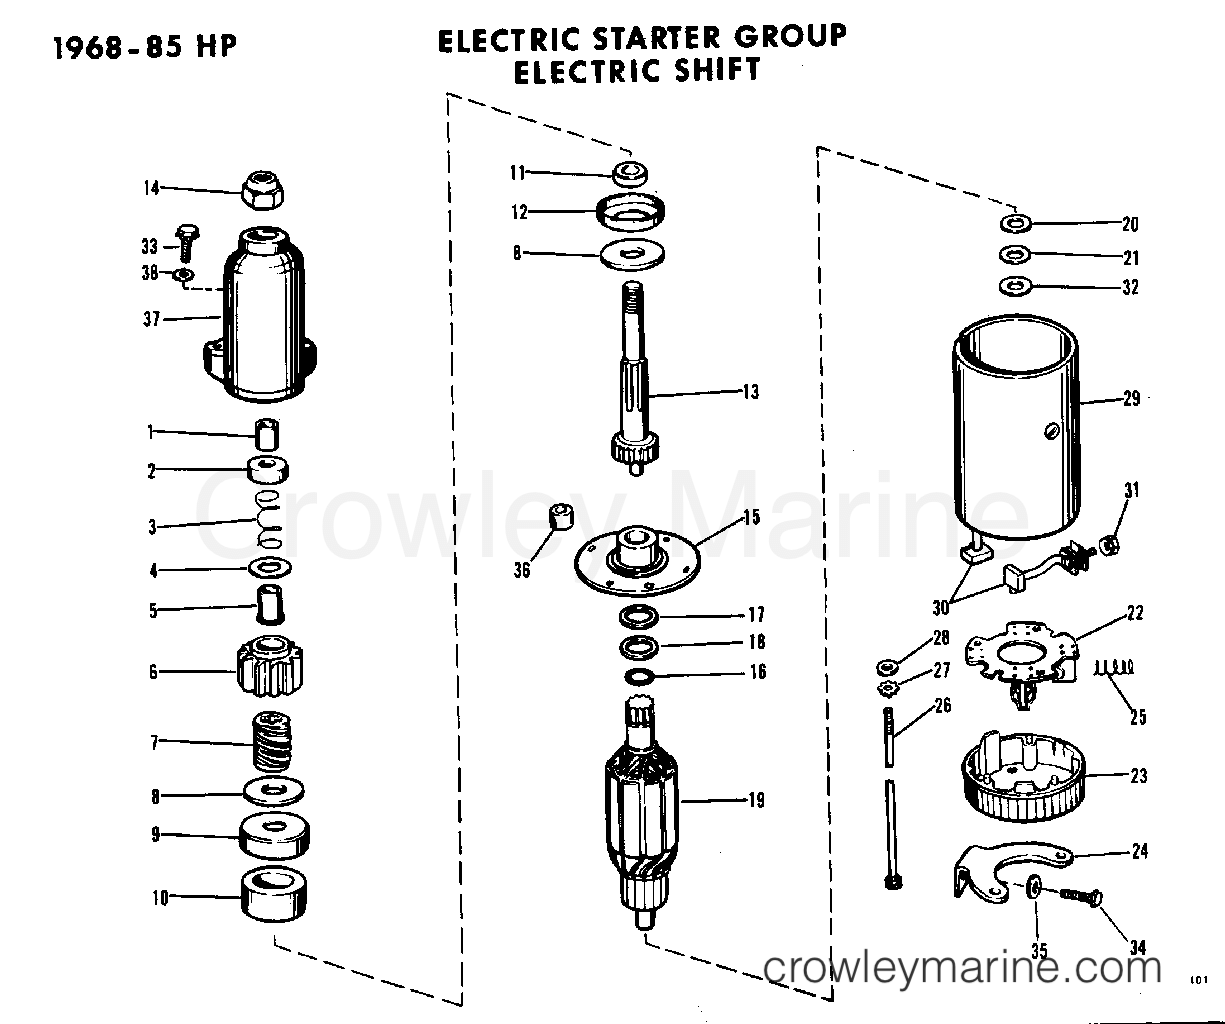 Electric Starter Group Electric Shift